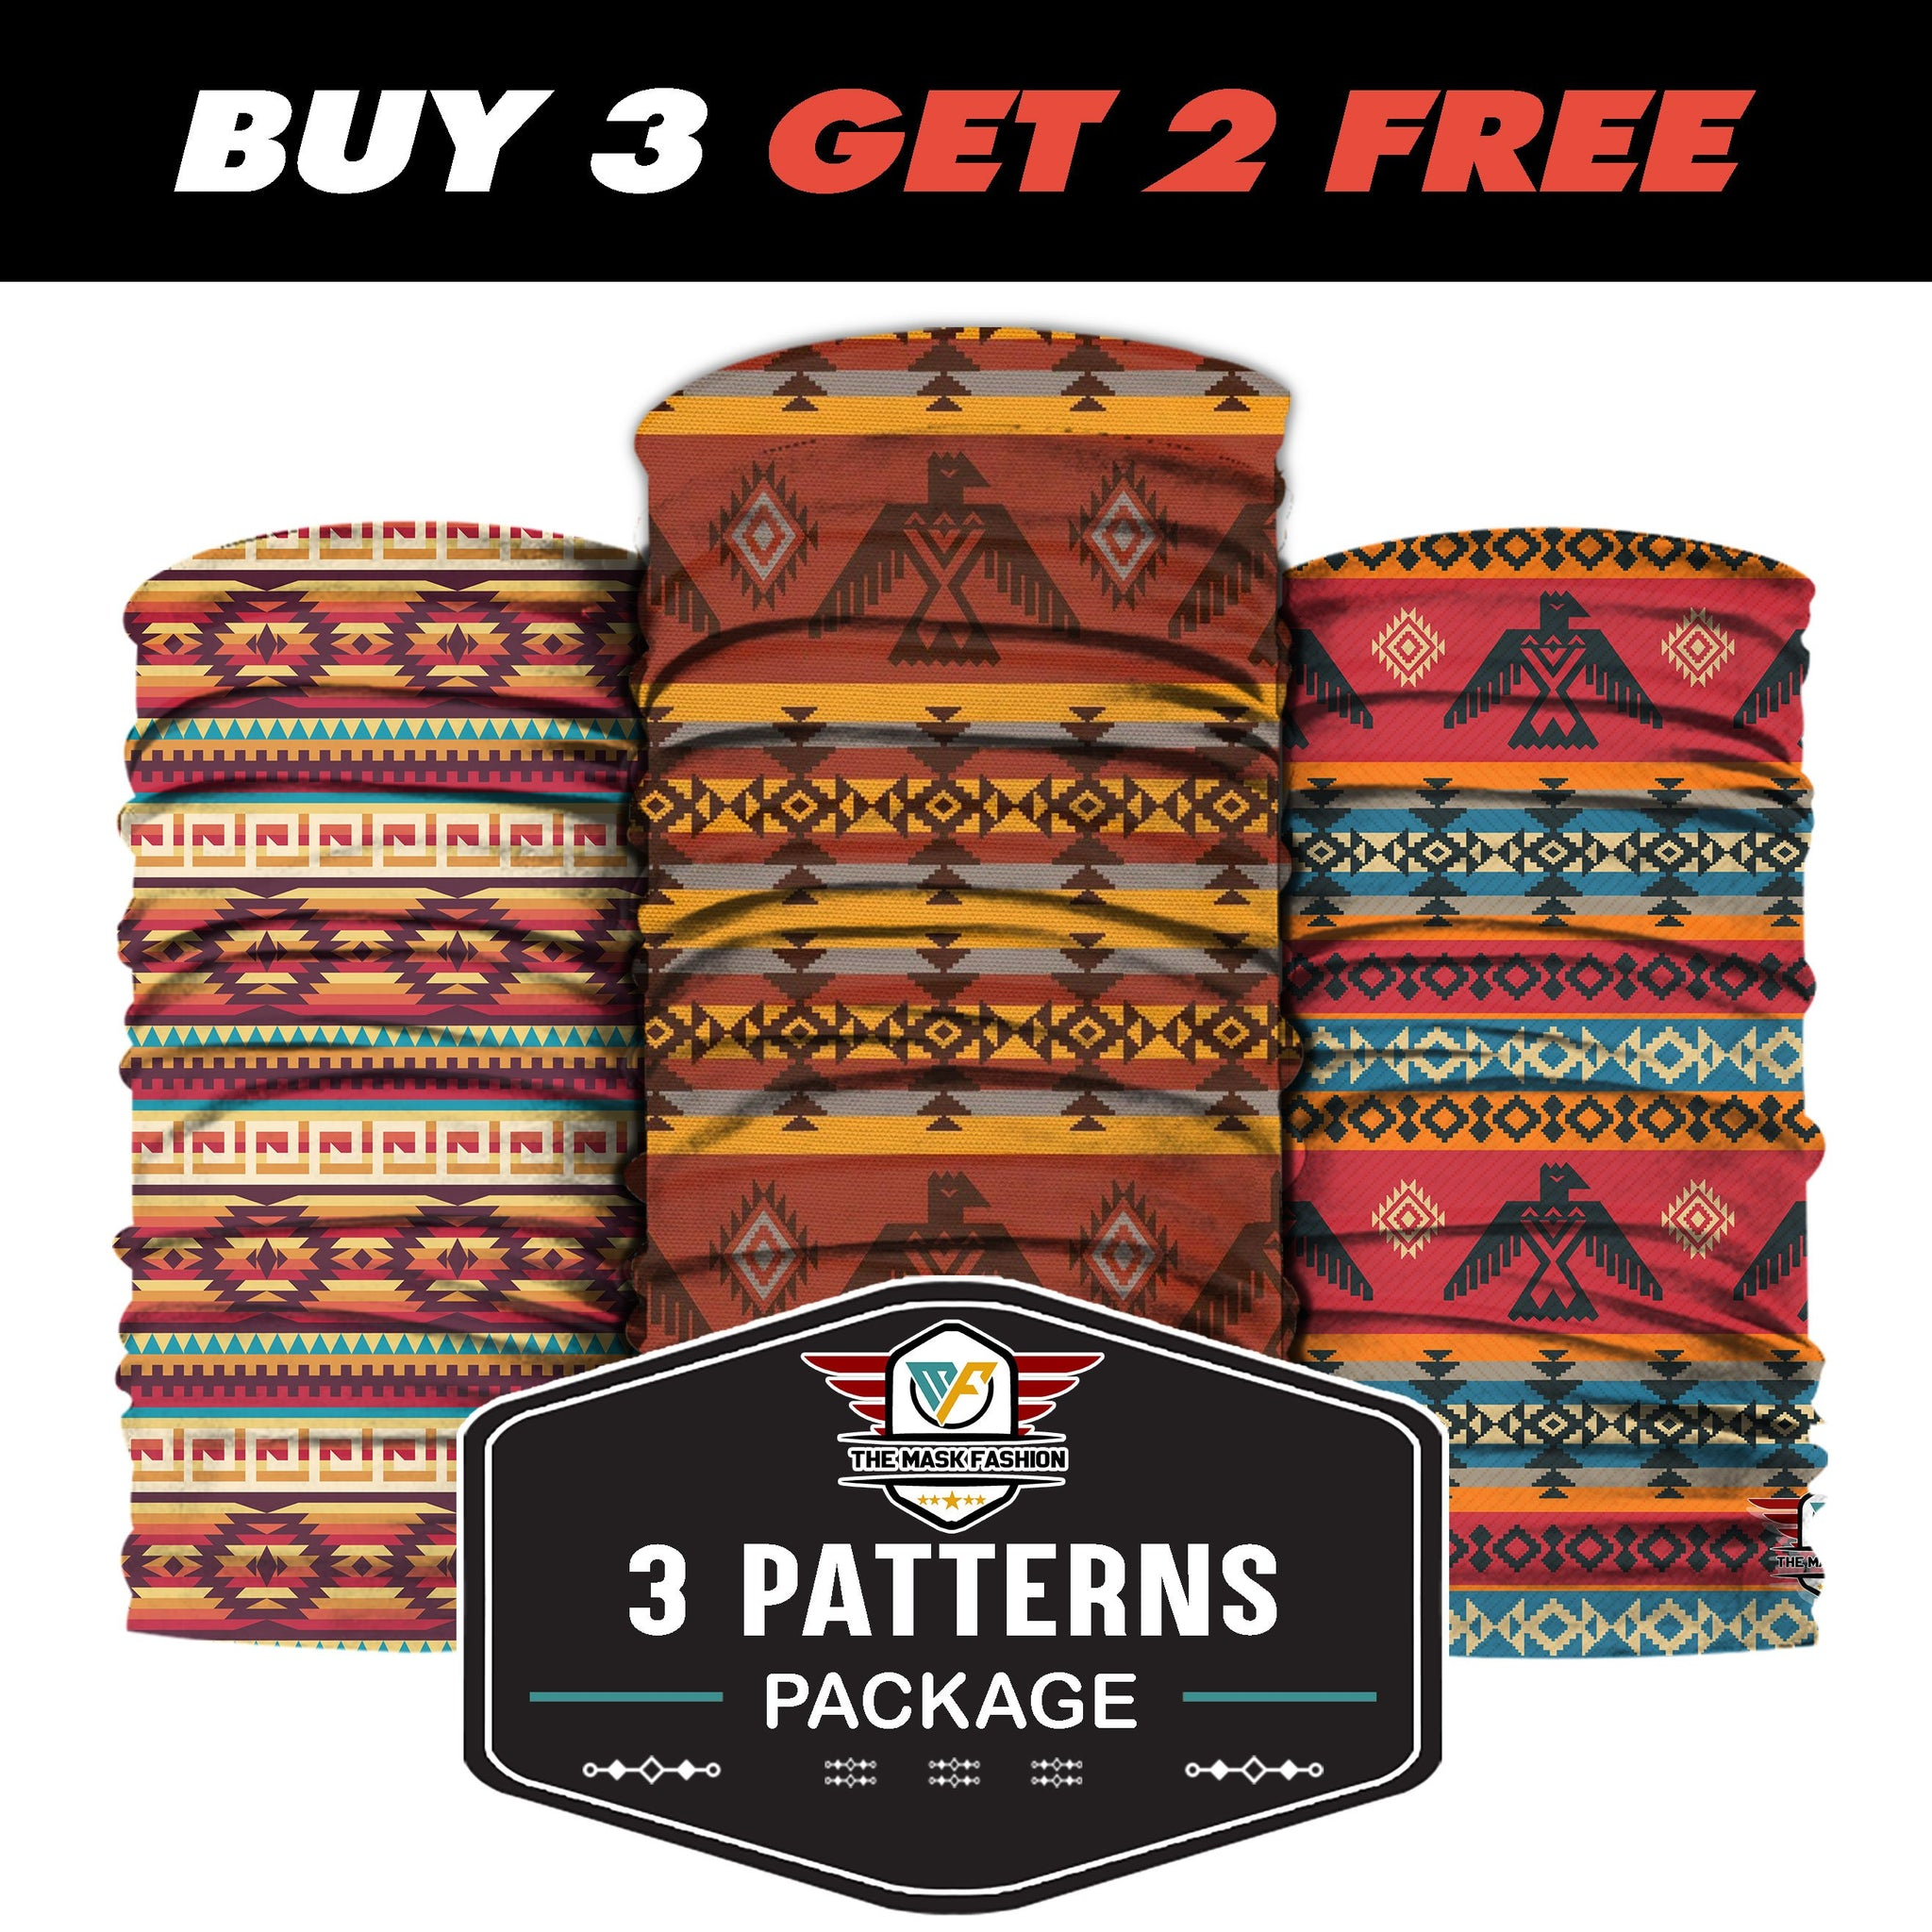 3-Pattern Package 53